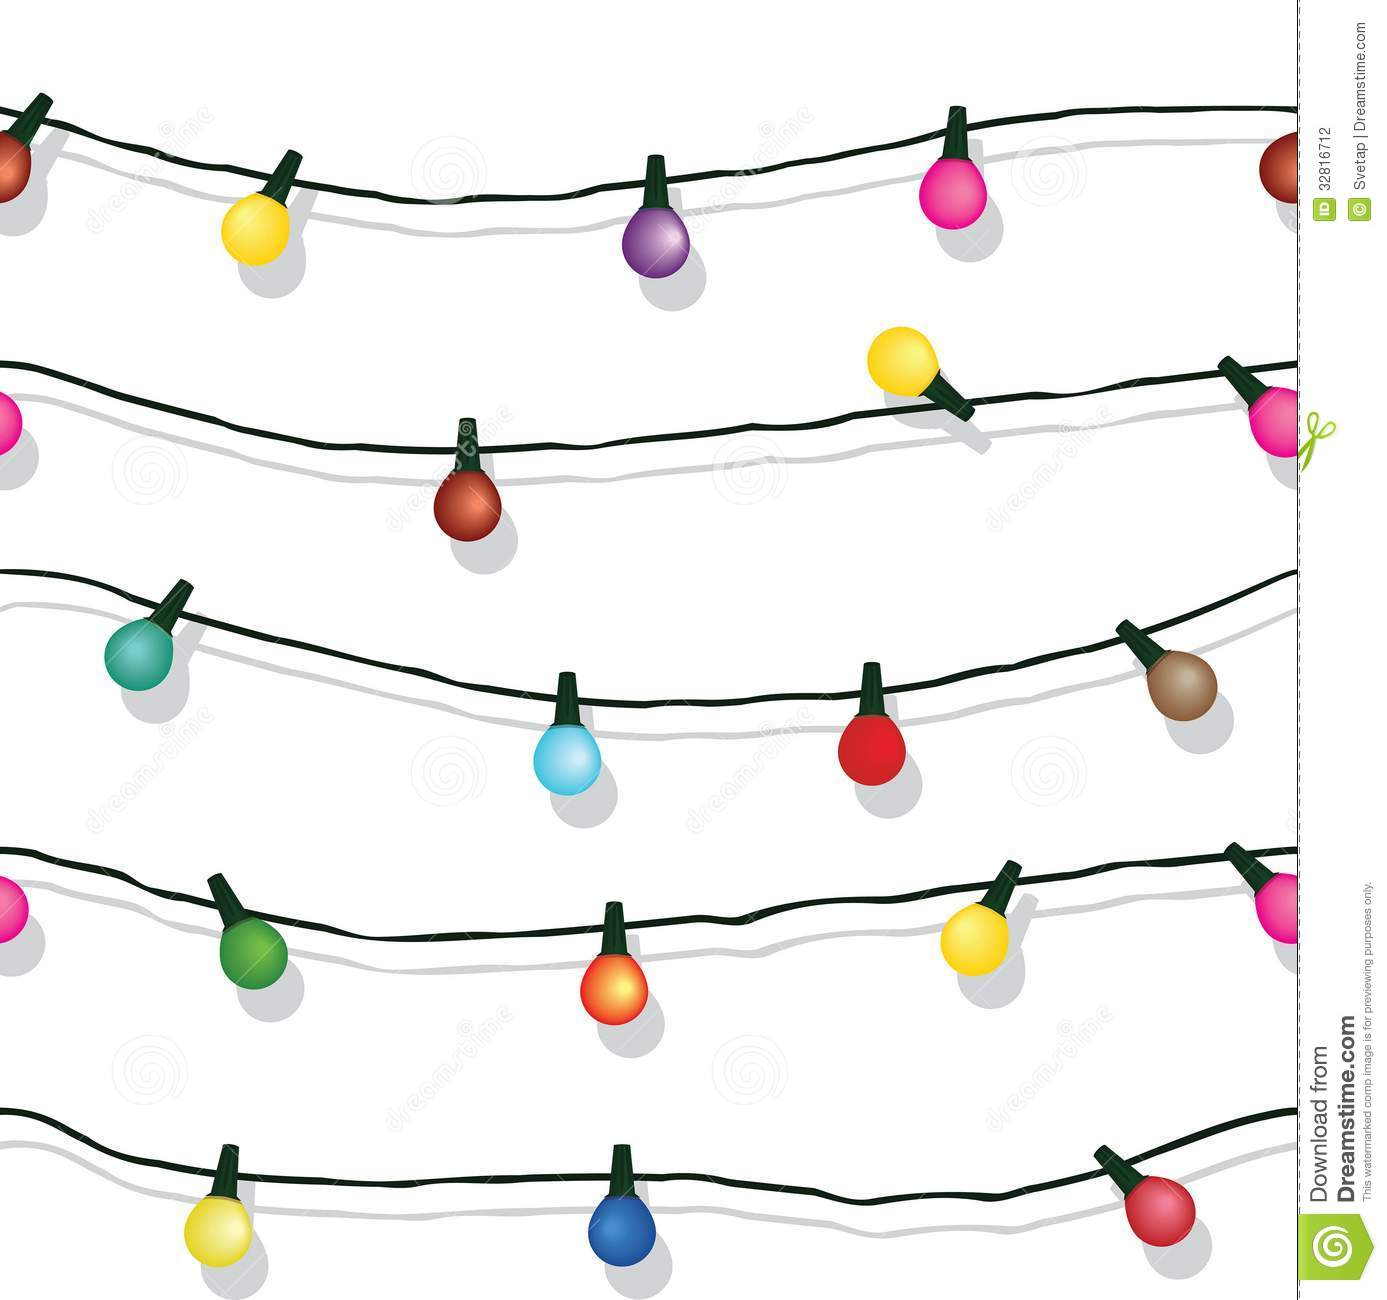 String Of Christmas Lights Image : String Of Christmas Lights Black And White Clipart - Clipart Suggest